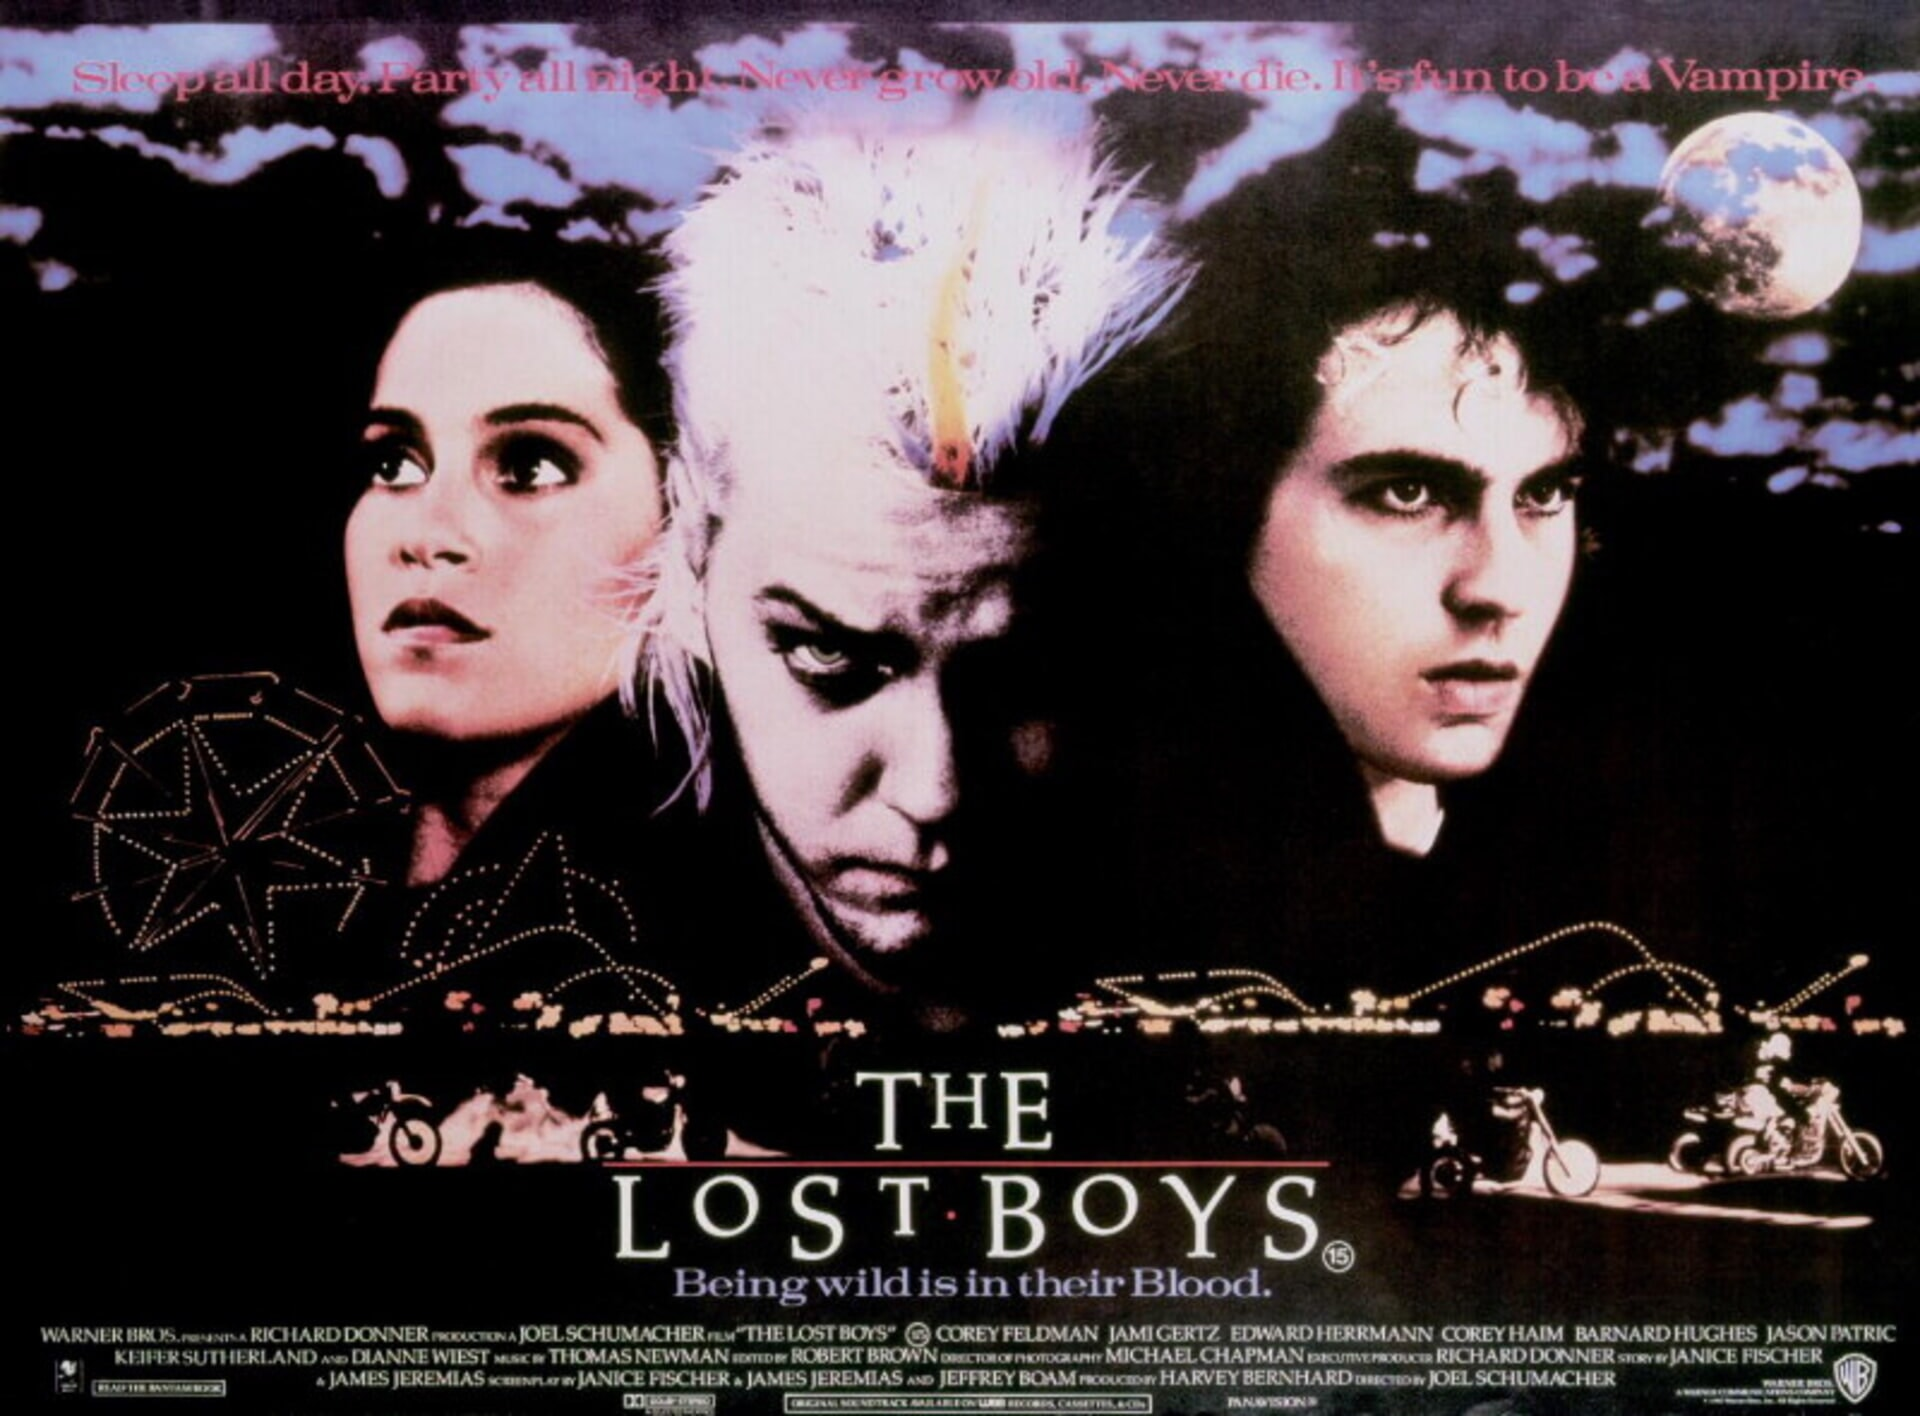 The Lost Boys - Poster 2